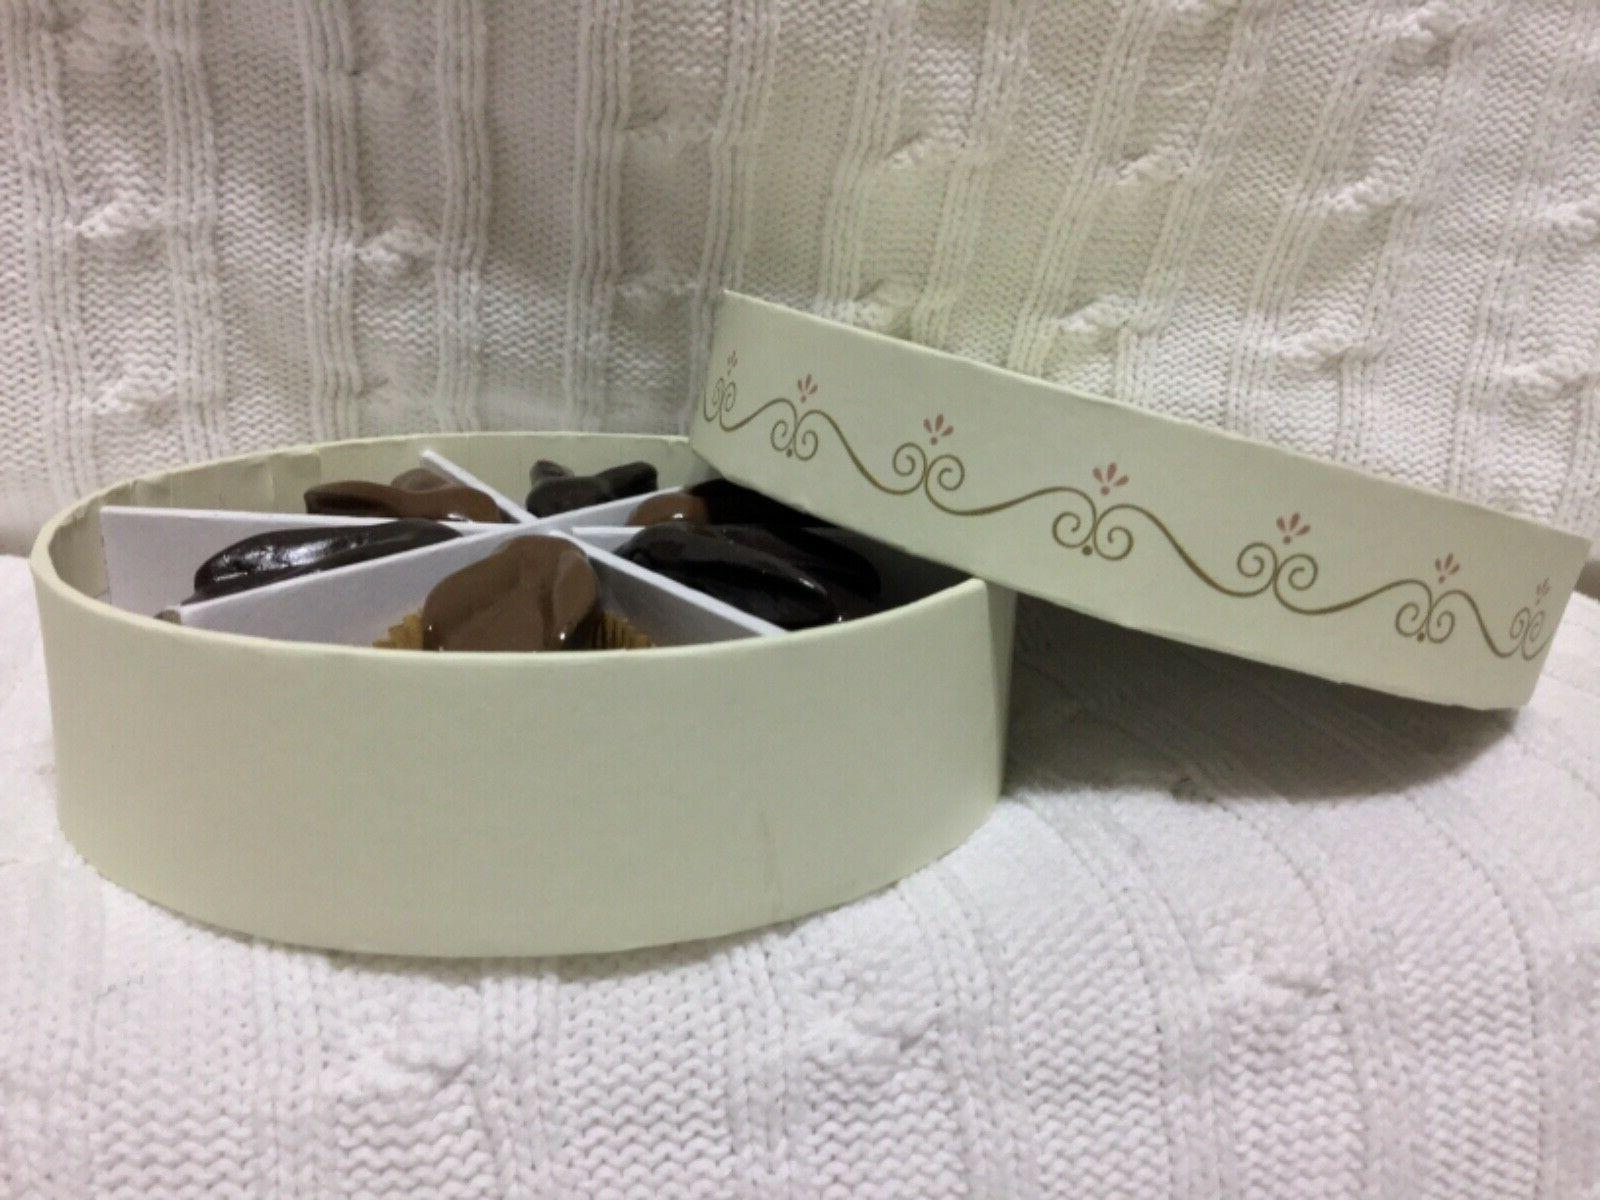 BOXED BUNNY CANDIES DECORATIONS